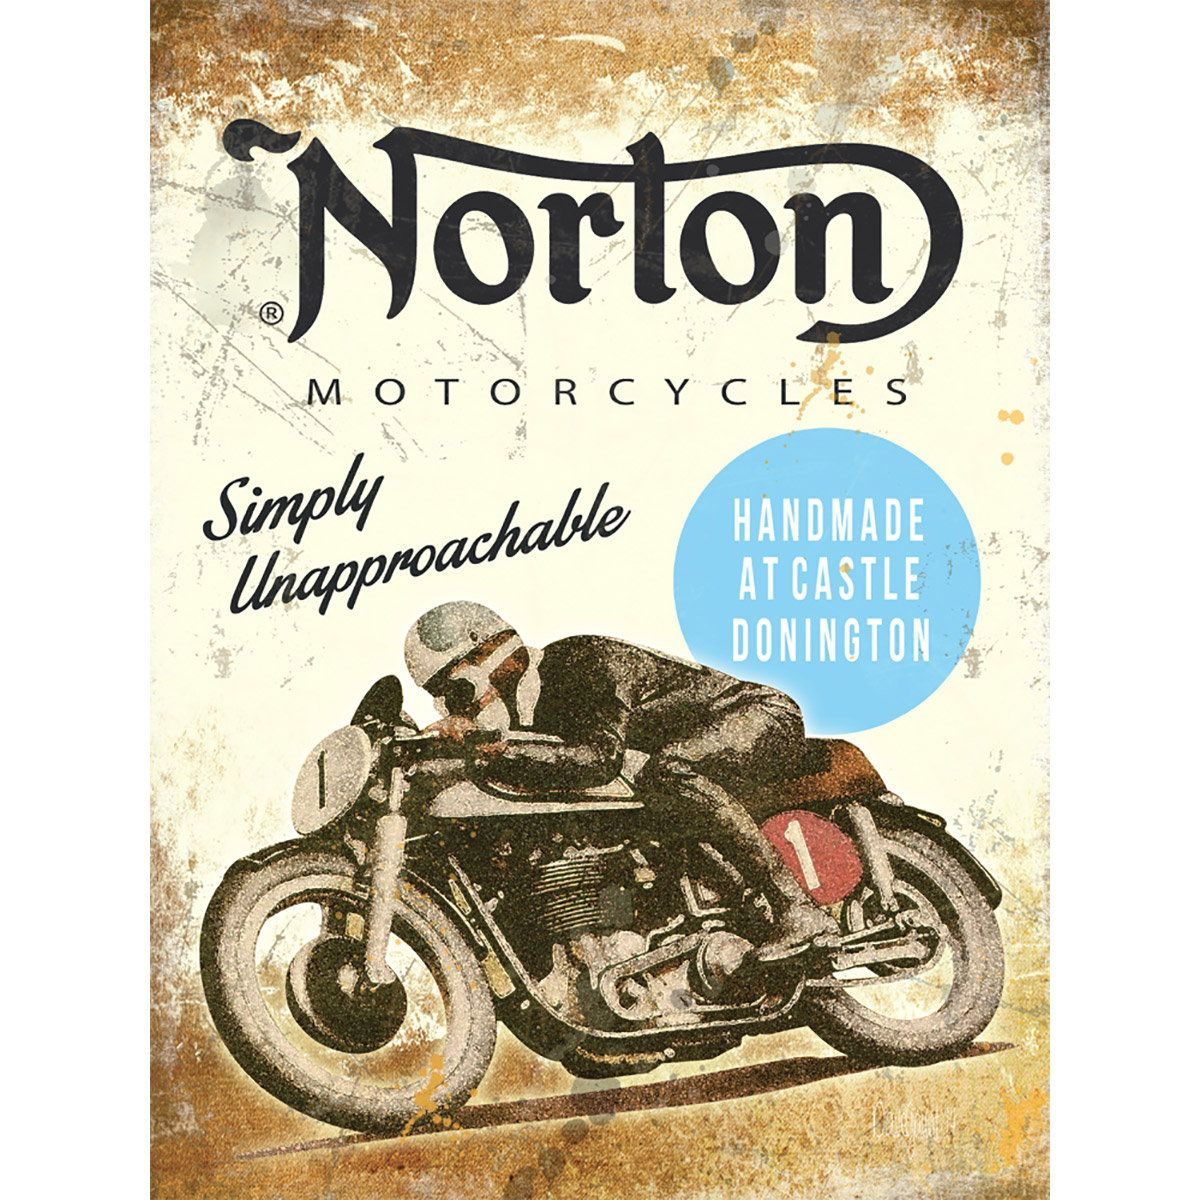 Angle Plaque Moto Norton Motorcycles Unapproachable Metal Sign D Vintage Style Metal